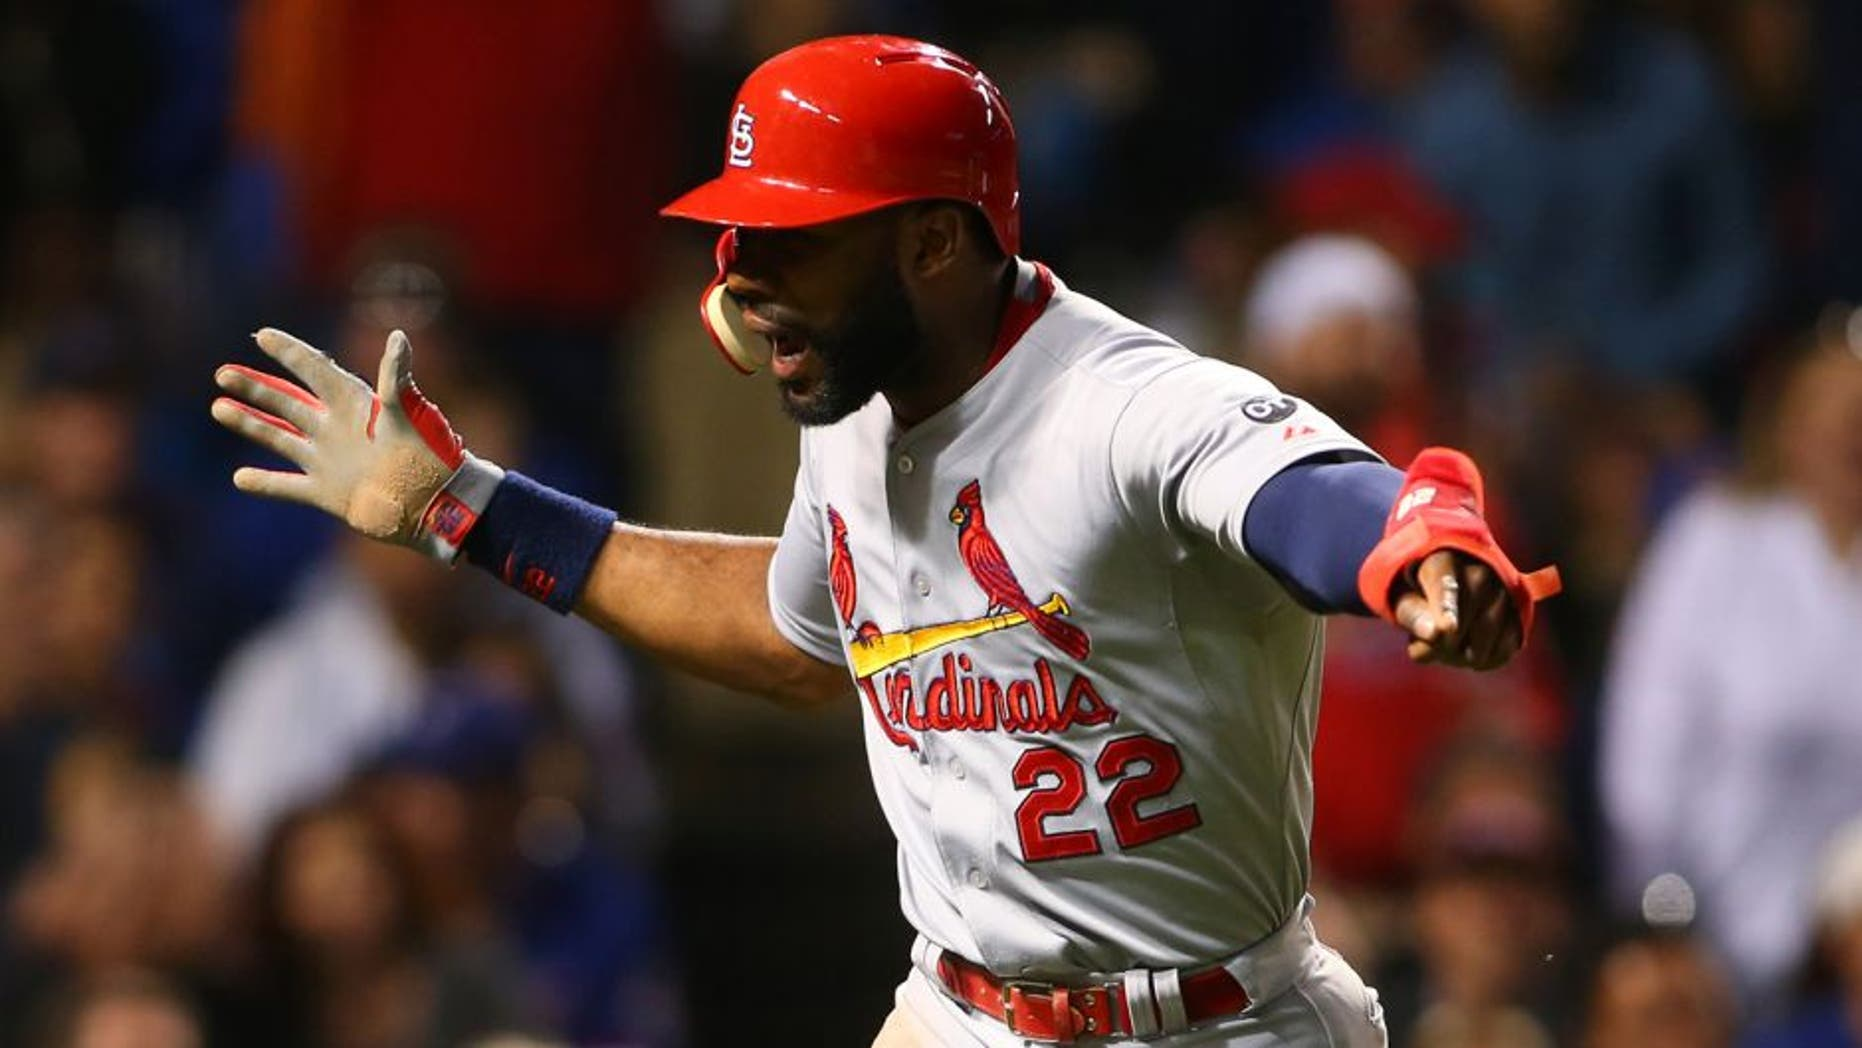 Jul 7, 2015; Chicago, IL, USA; St. Louis Cardinals right fielder Jason Heyward (22) celebrates after scoring during the sixth inning in game two of a baseball doubleheader against the Chicago Cubs at Wrigley Field. Mandatory Credit: Caylor Arnold-USA TODAY Sports